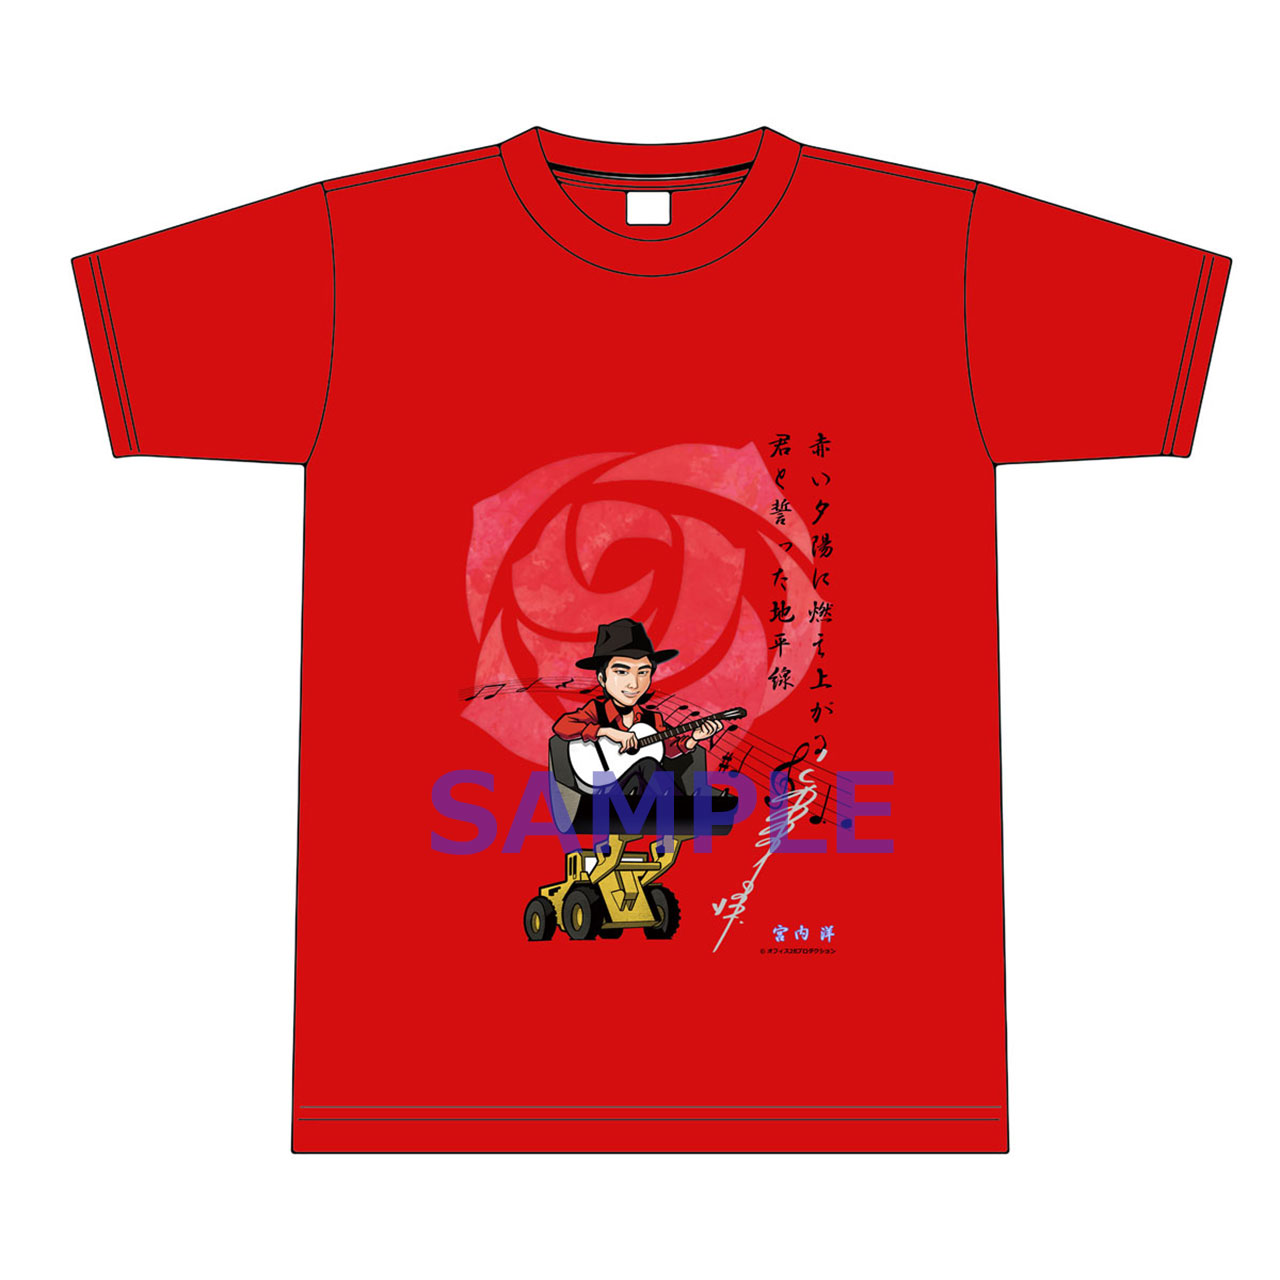 Tシャツ A  銀色箔押しサイン付きver.